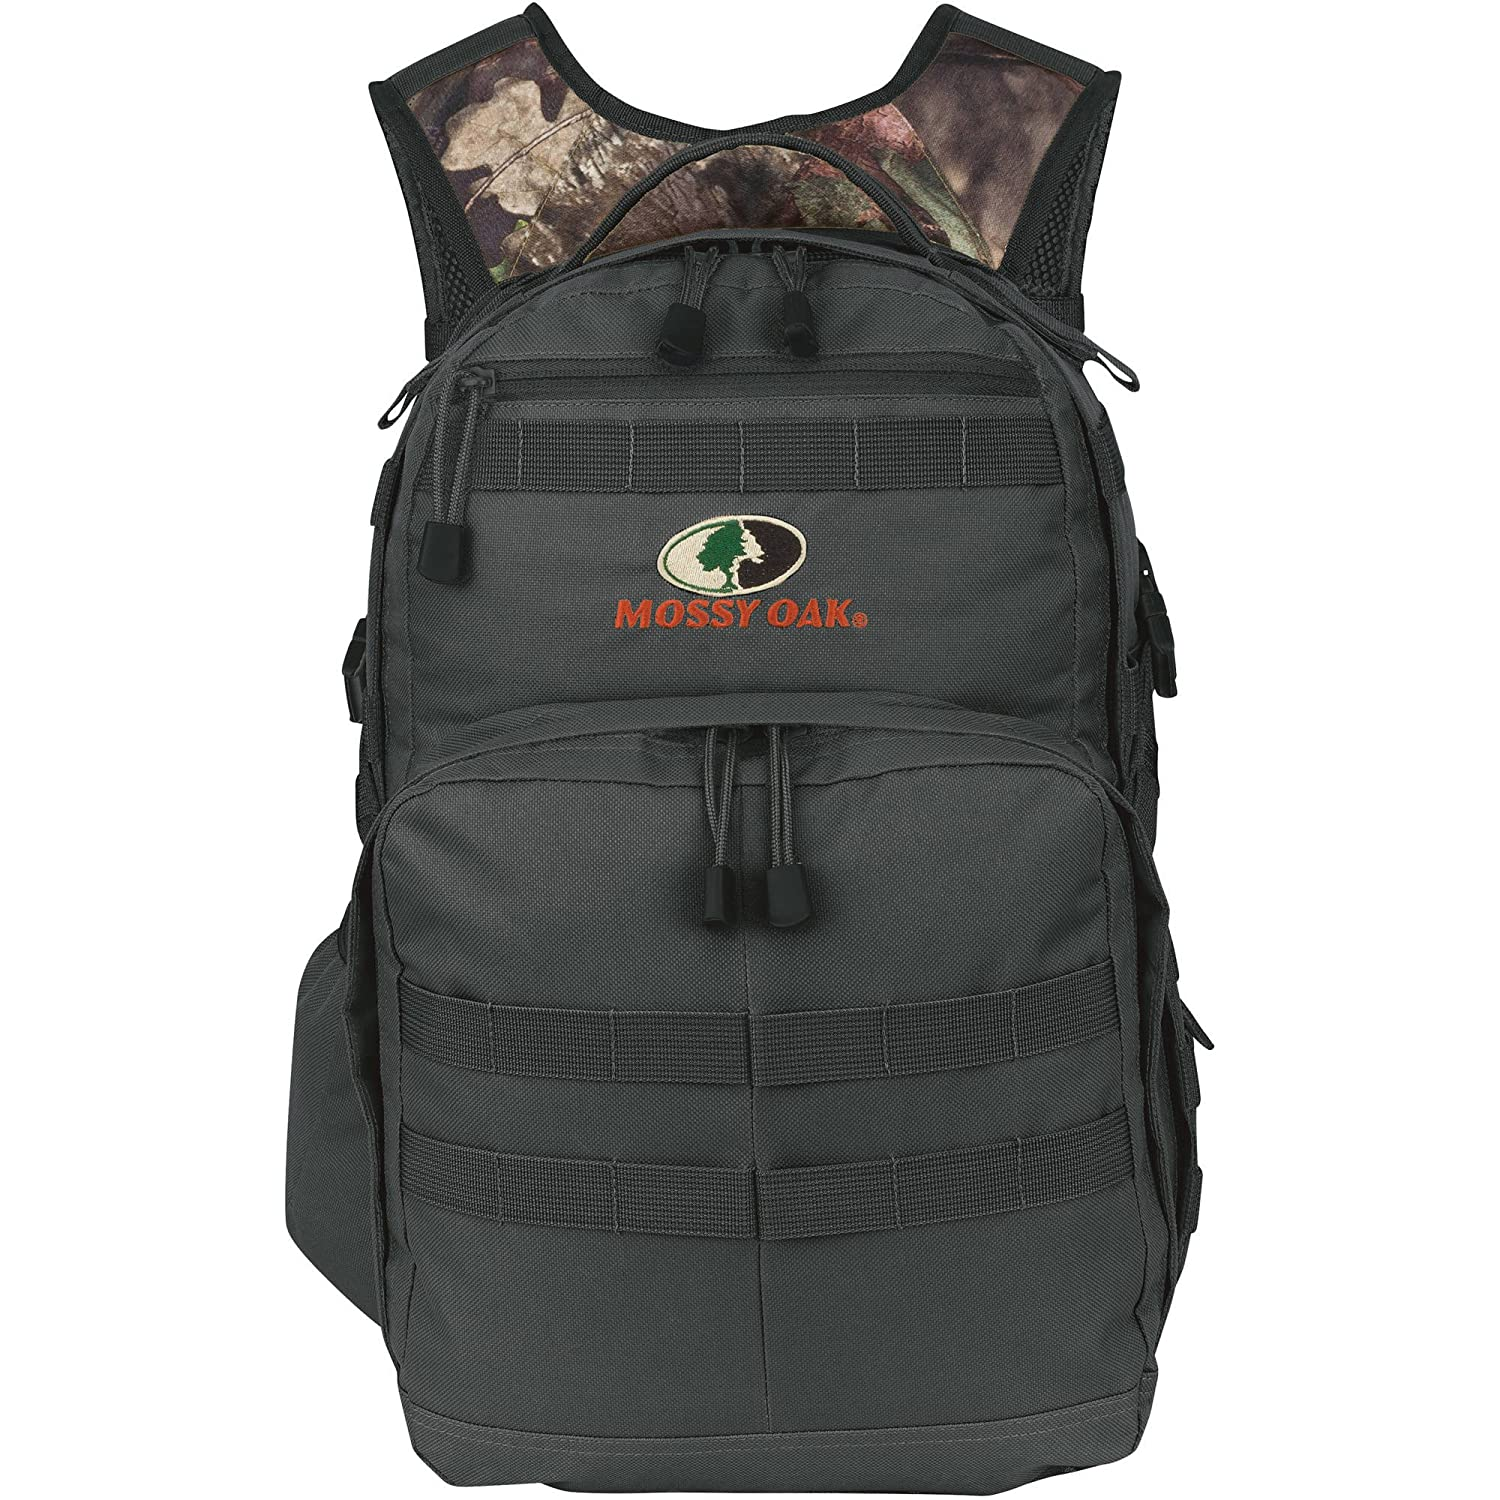 993ea7490d83 Mossy Oak Outback Day Pack